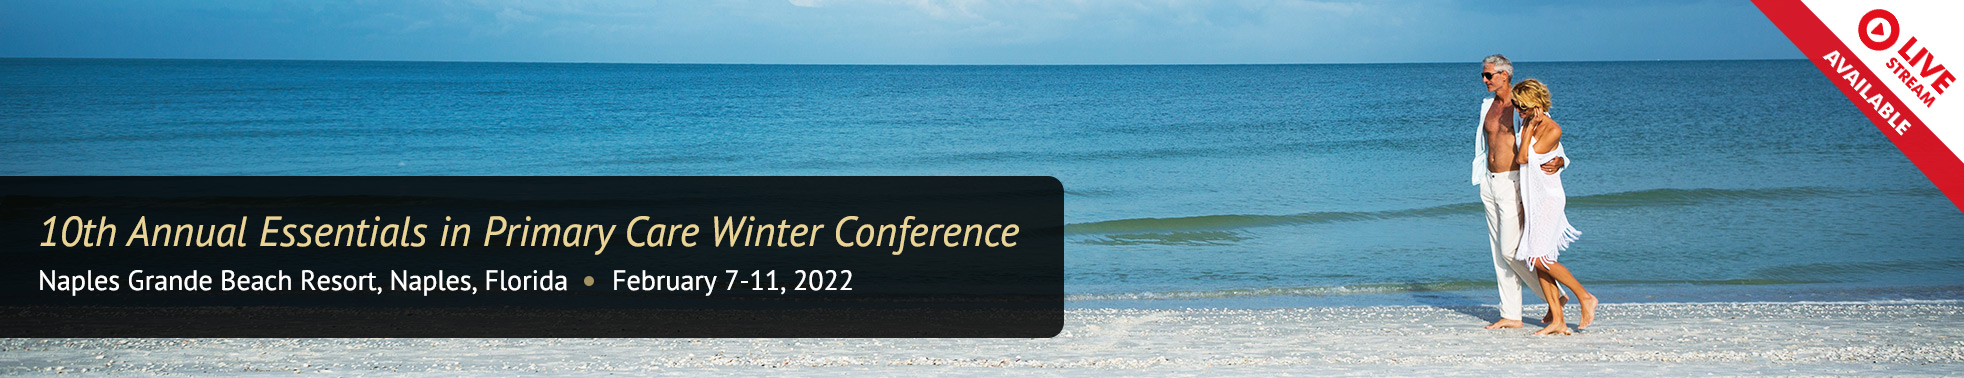 Naples Florida CME 2022